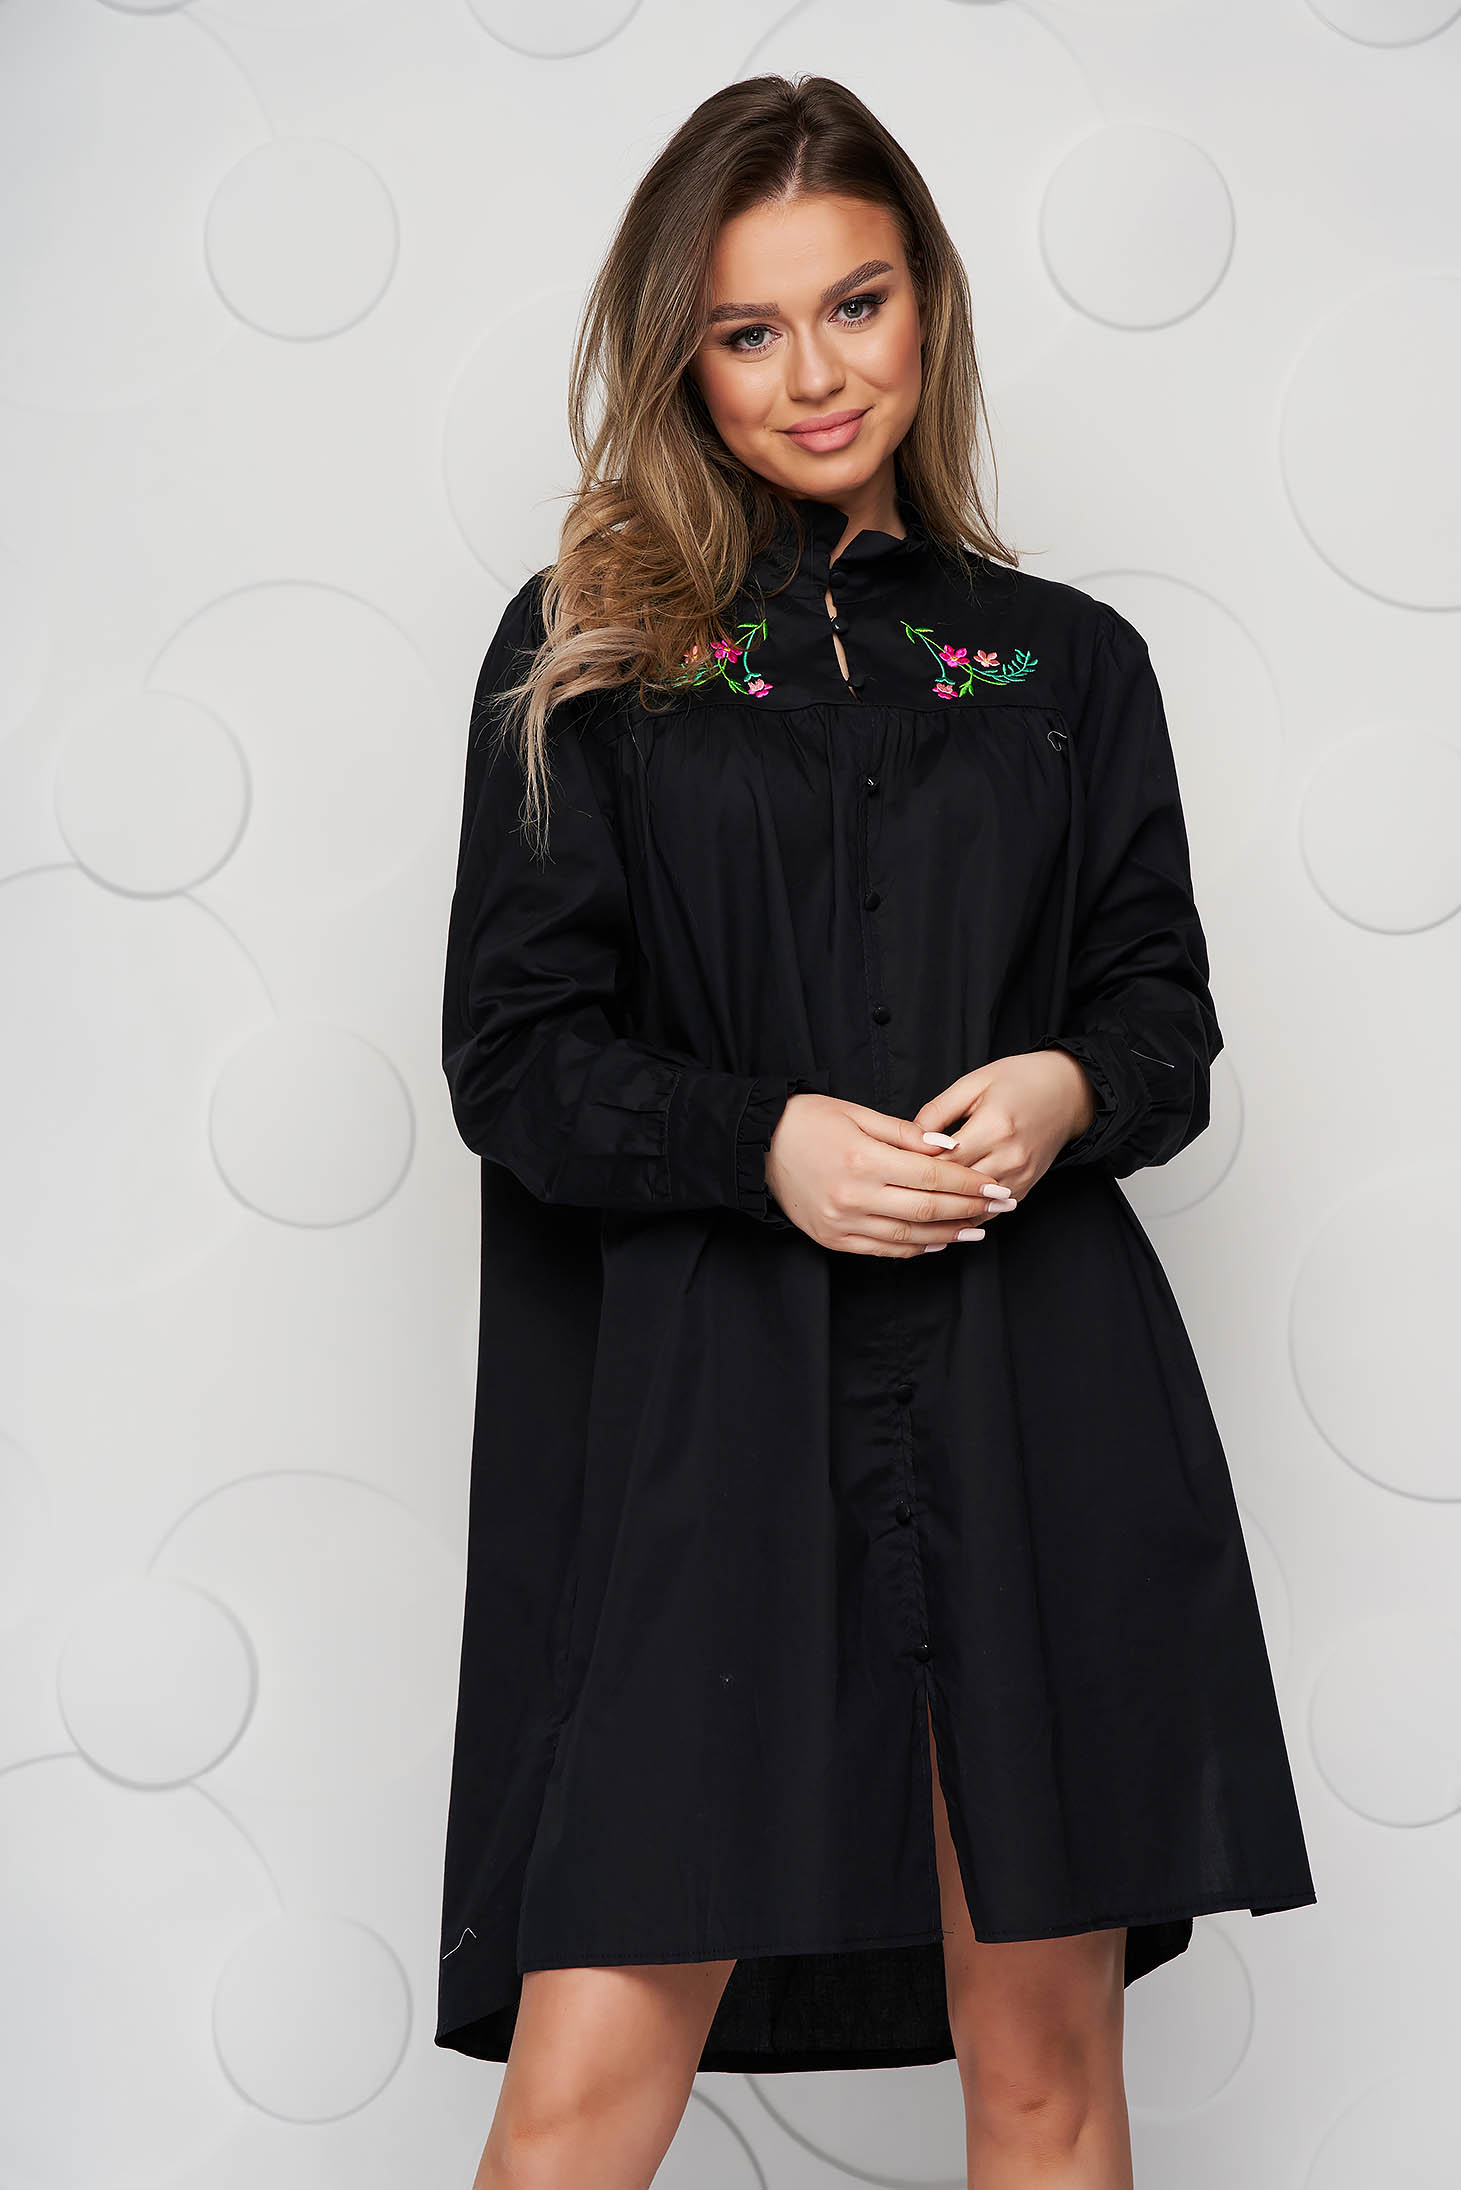 Black dress loose fit poplin, thin cotton ruffled collar embroidered